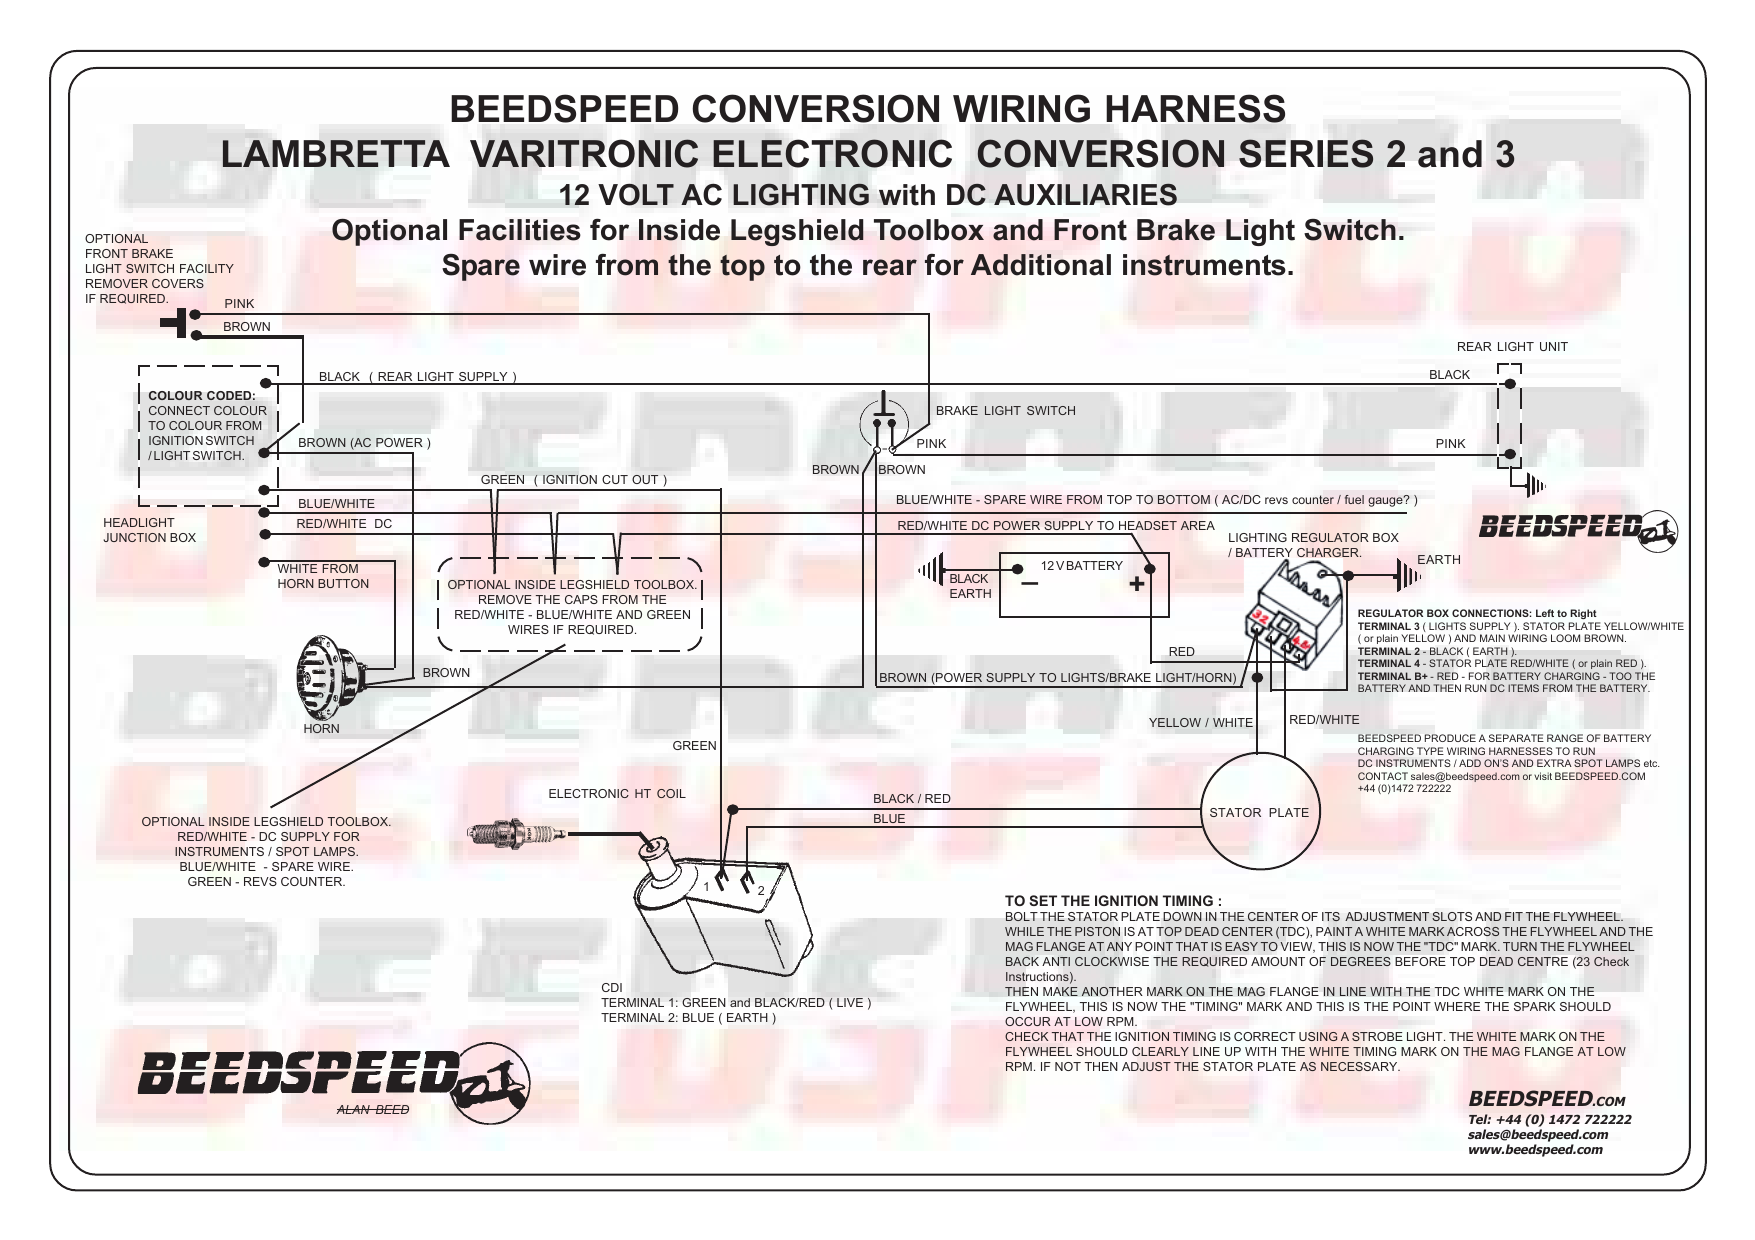 beedspeed conversion wiring harness lambretta rh studylib net Tail Light Wiring Basic Light Wiring Diagrams